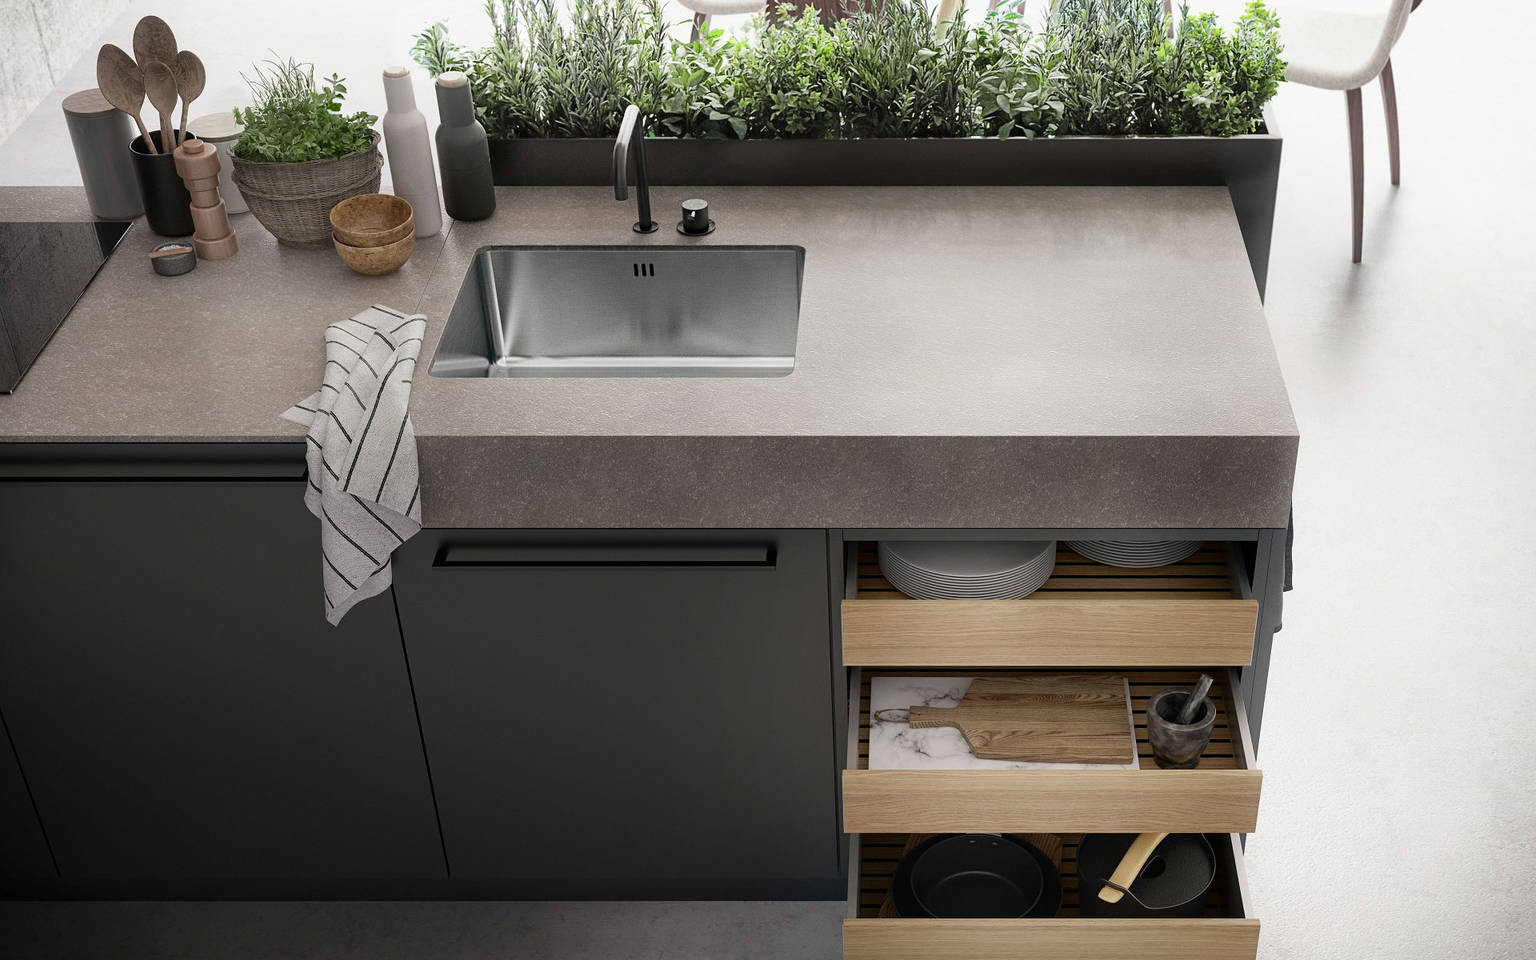 Kitchen island with SieMatic StoneDesign countertop and herb garden from the Urban style collection